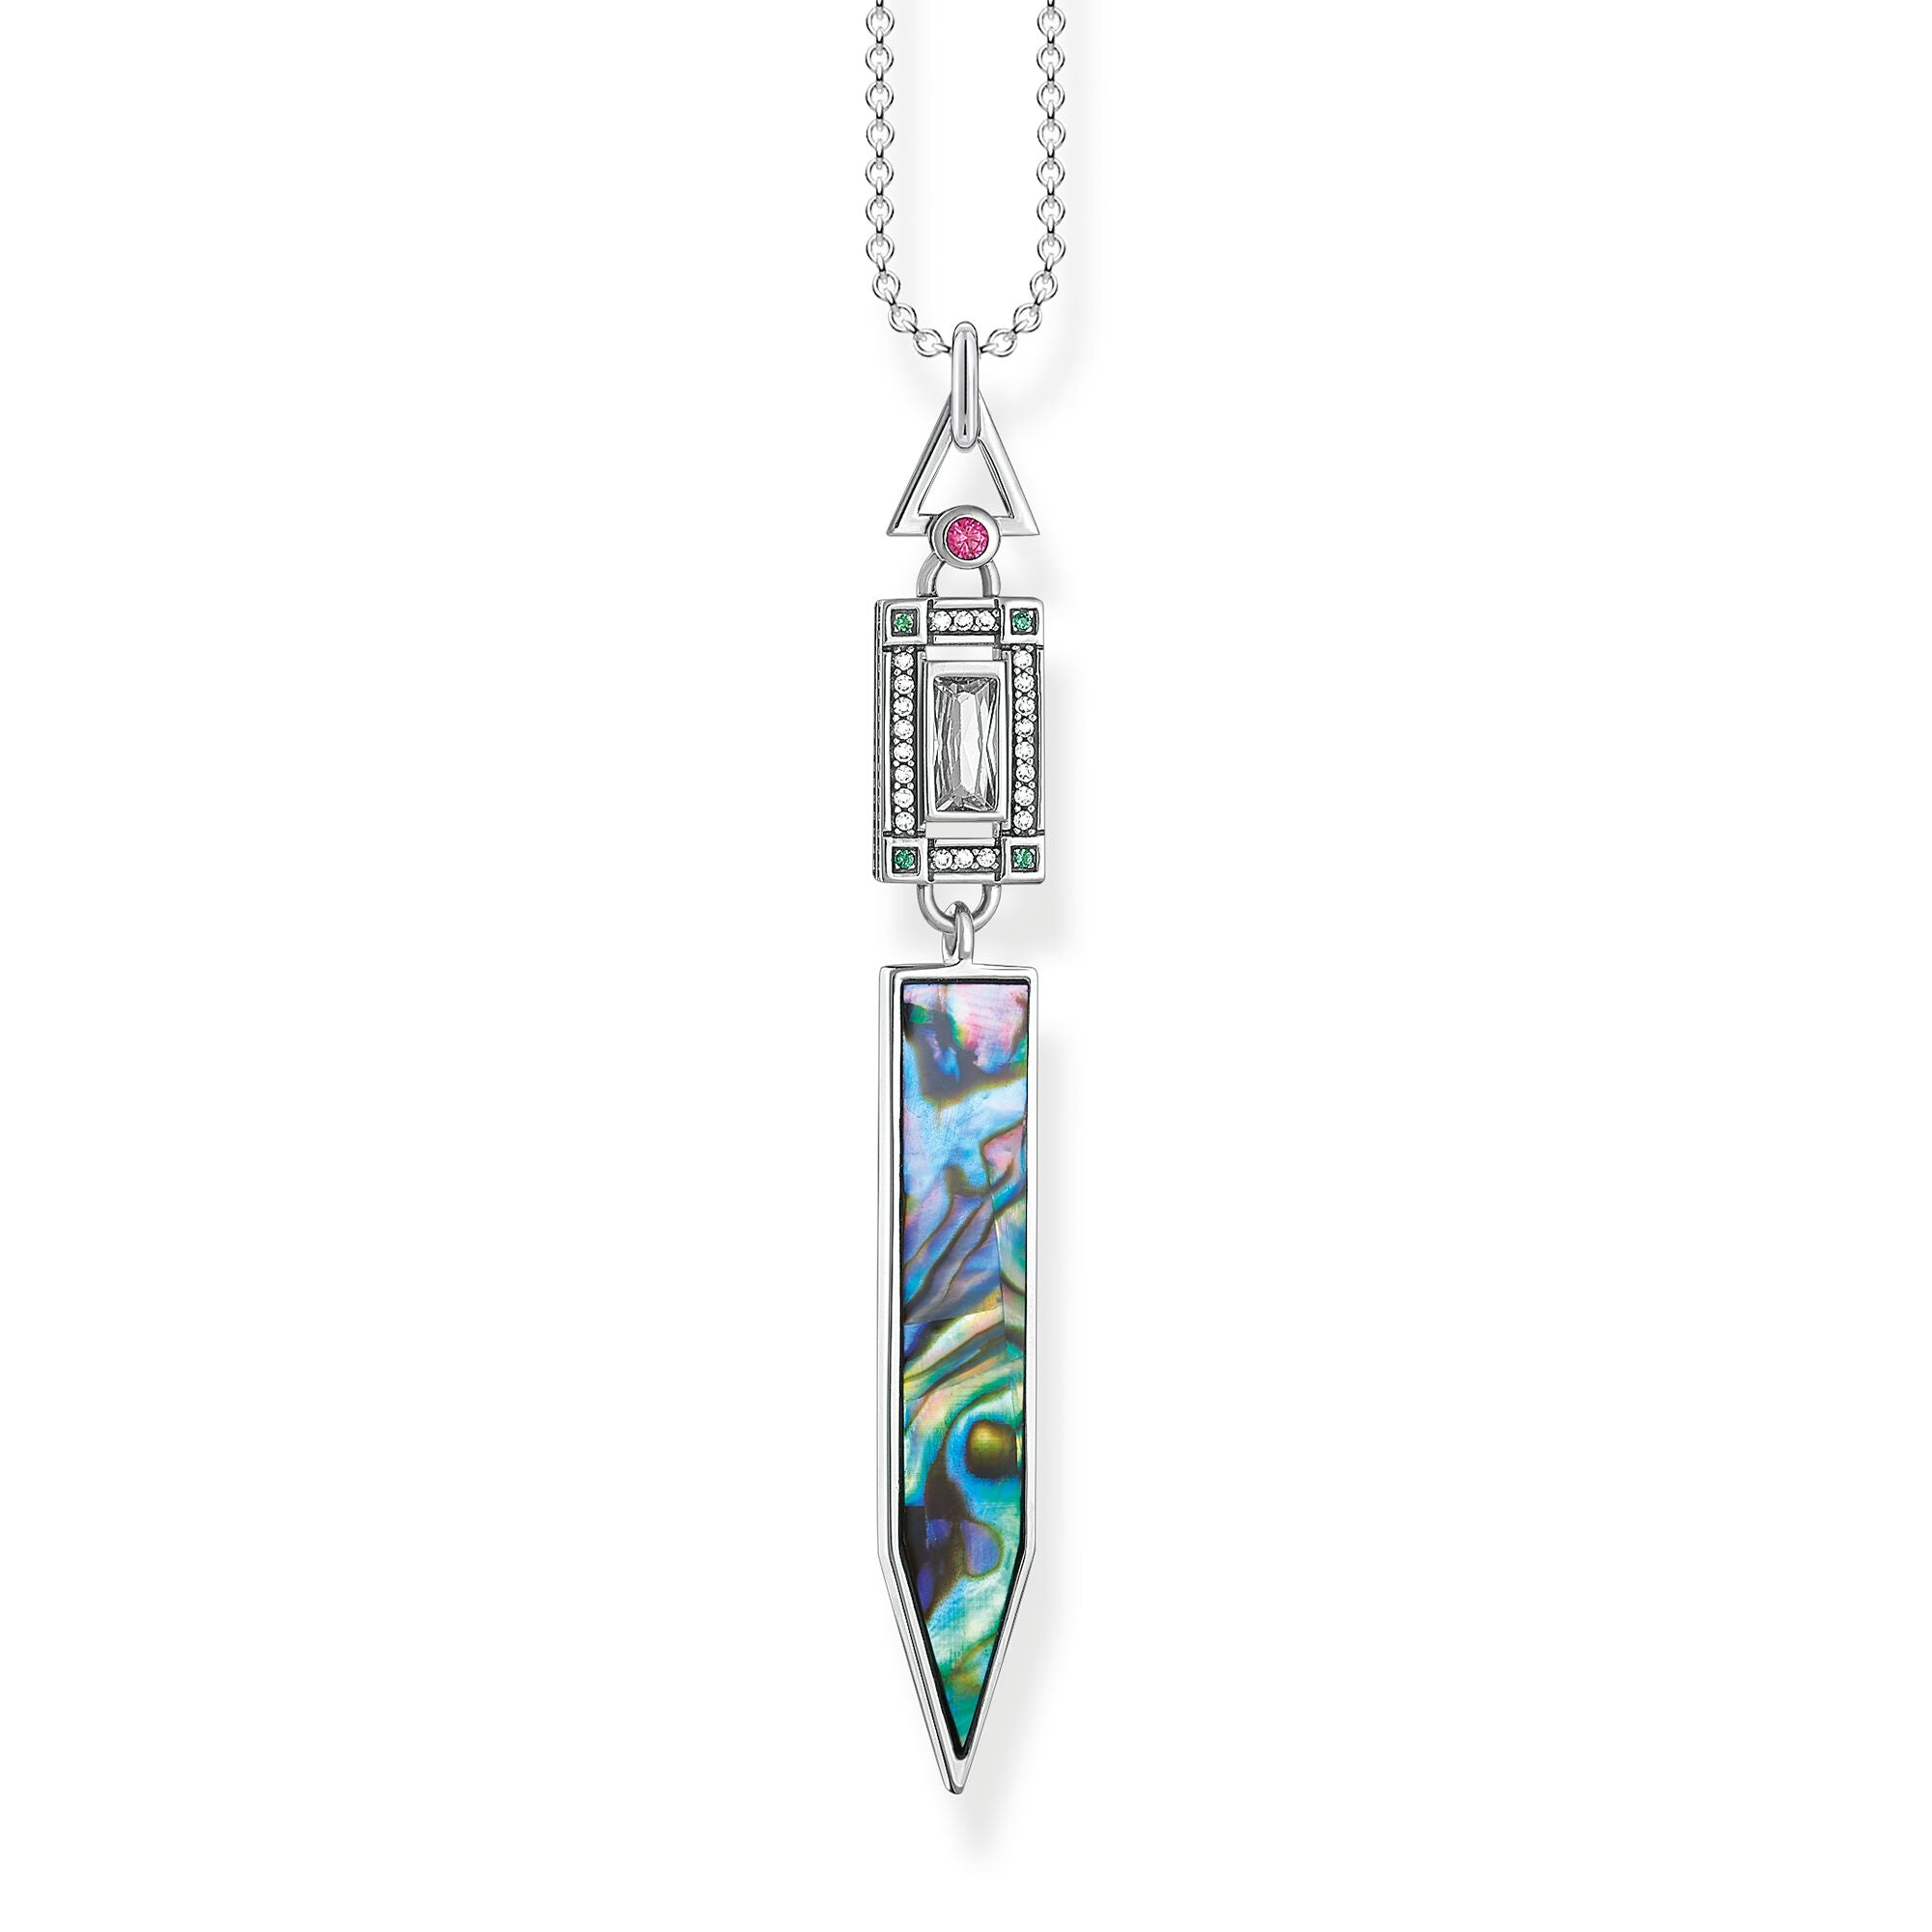 STERLING SILVER ART DECO ABALONE NECKLACE 45-50CM